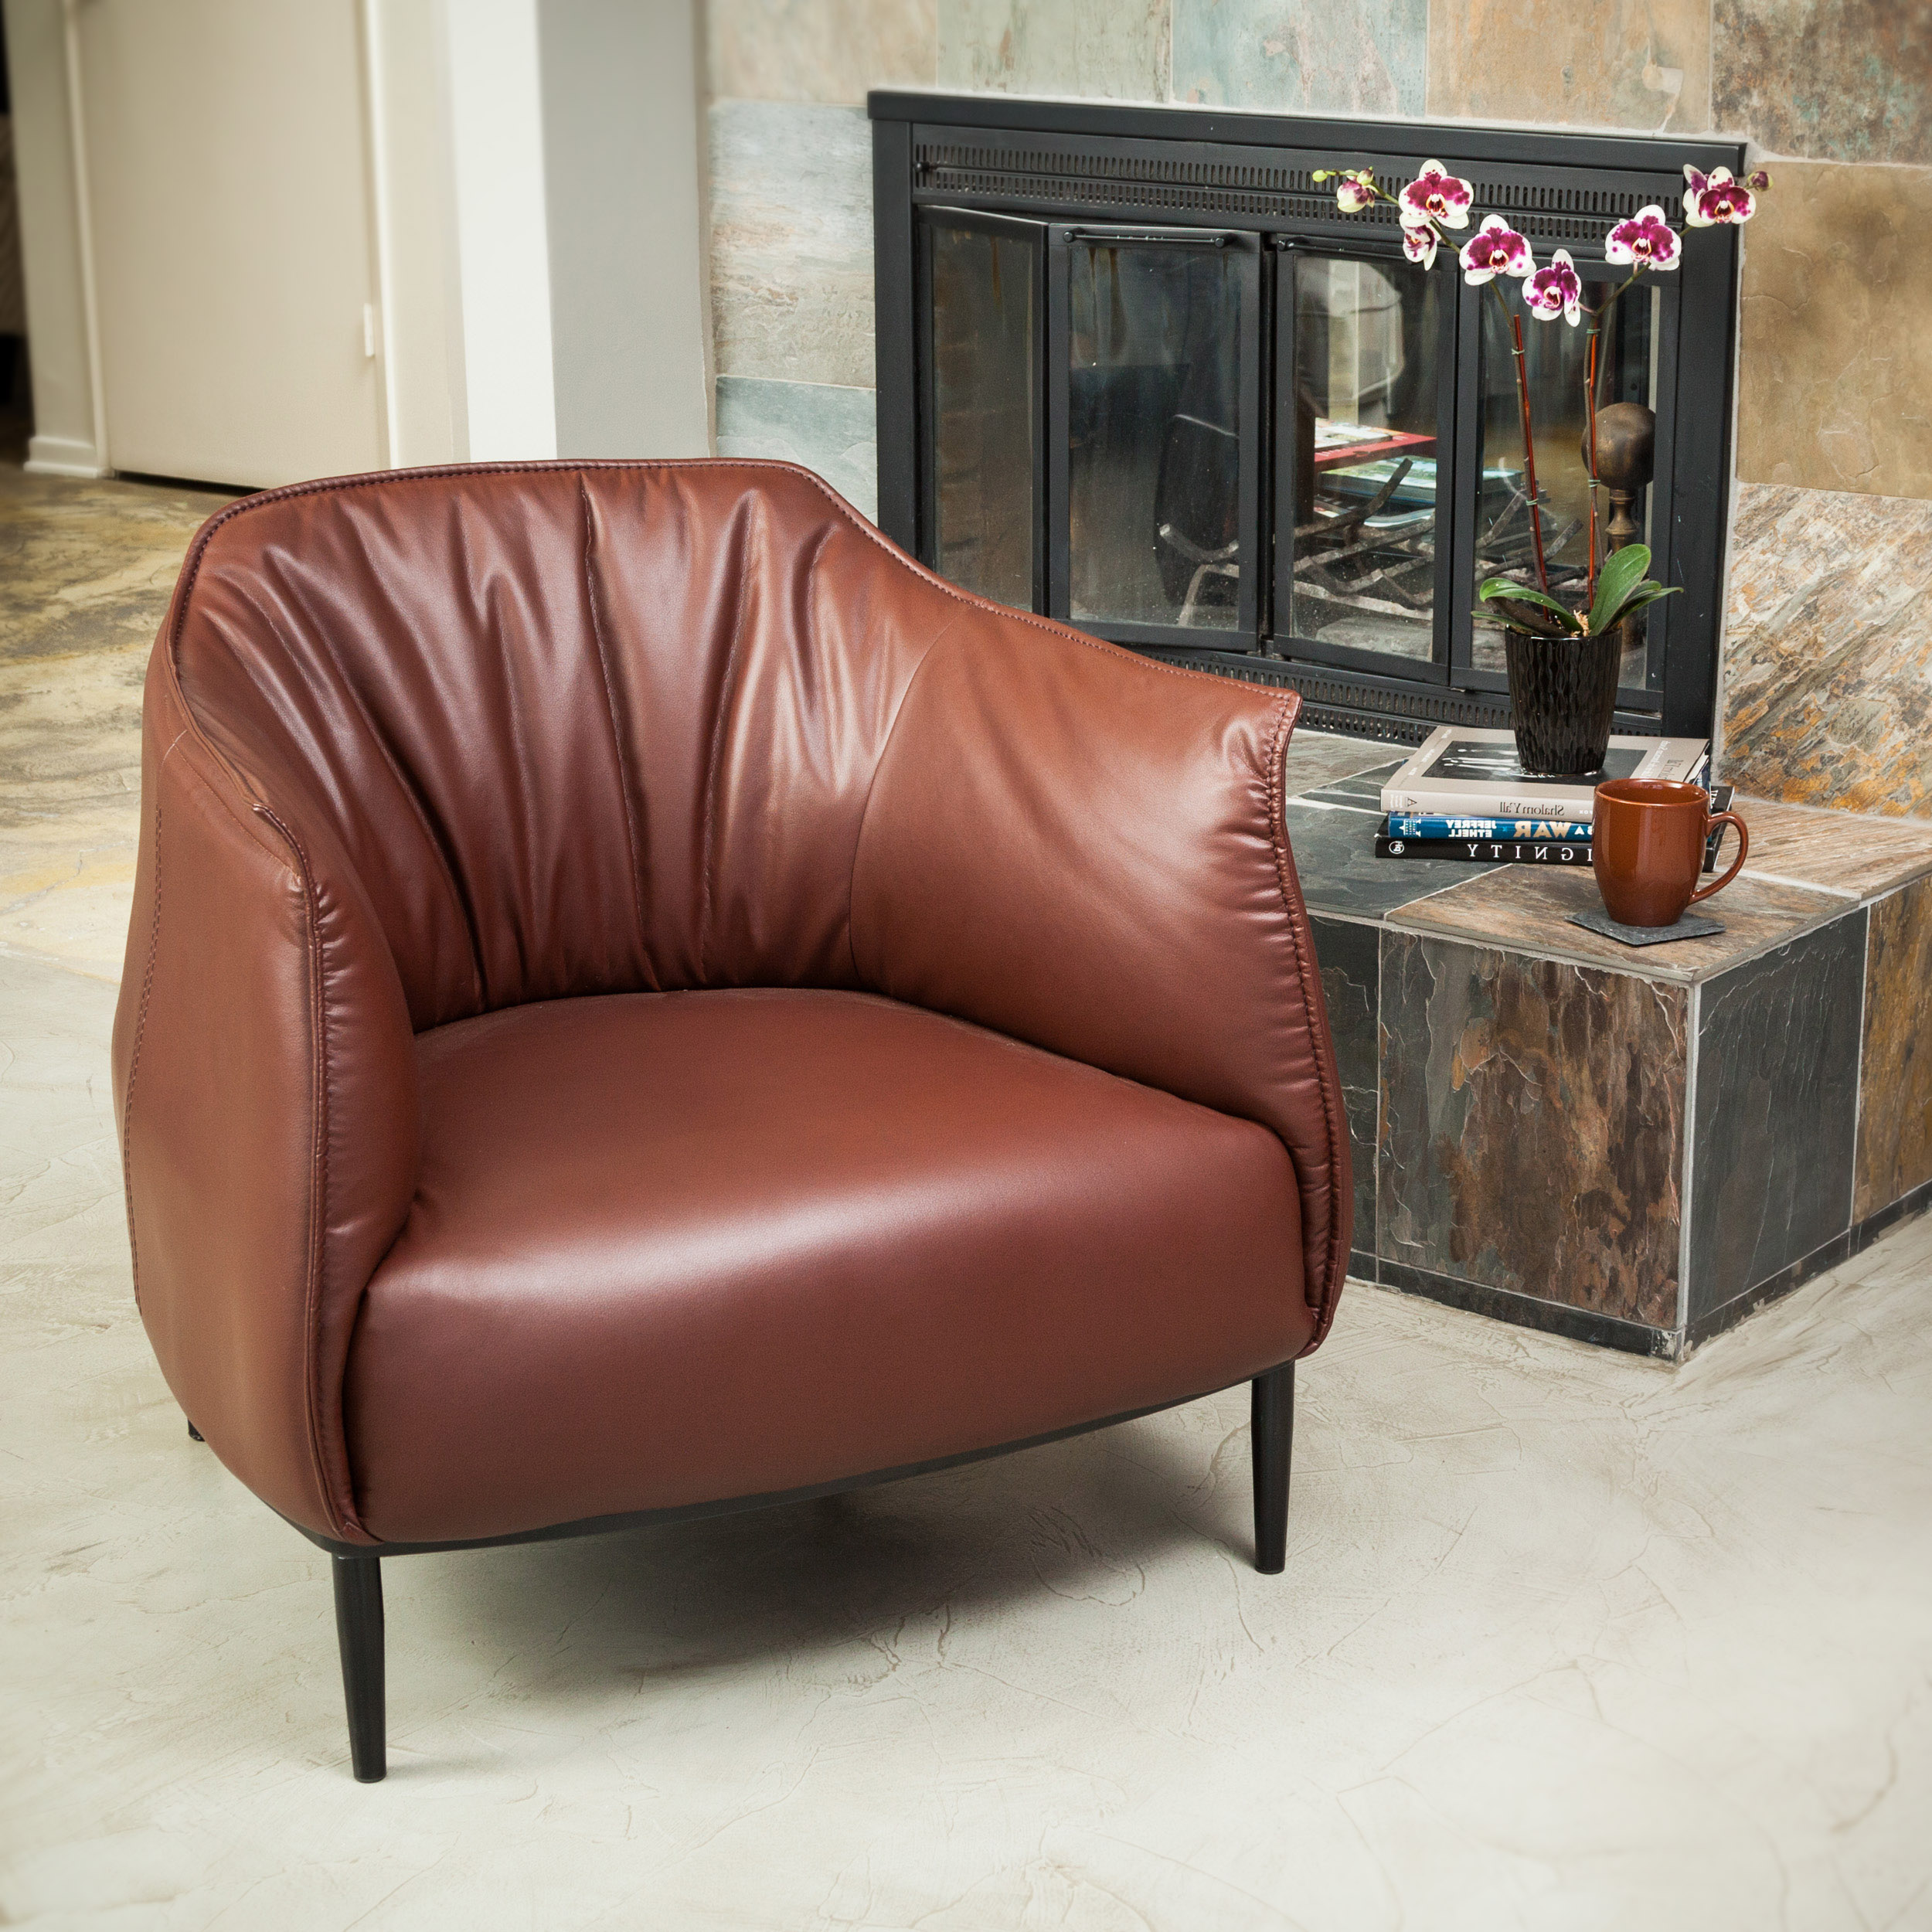 Loveseat And Chair With Ottoman Set